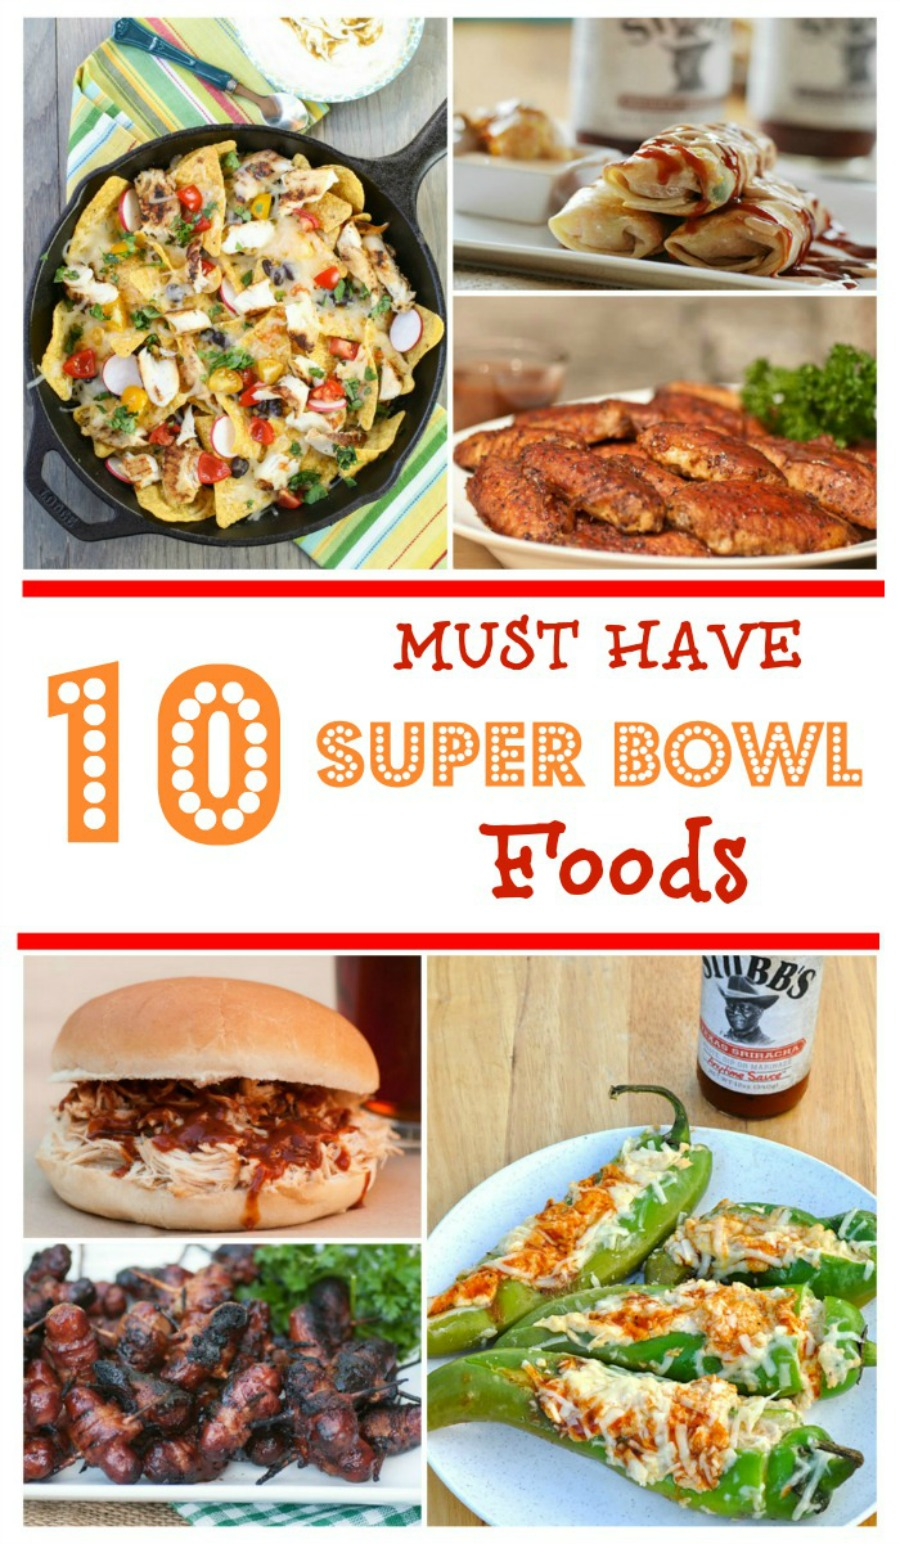 Looking for some delicious food for the big game? Check out these 10 Must Have Super Bowl Party Foods here!